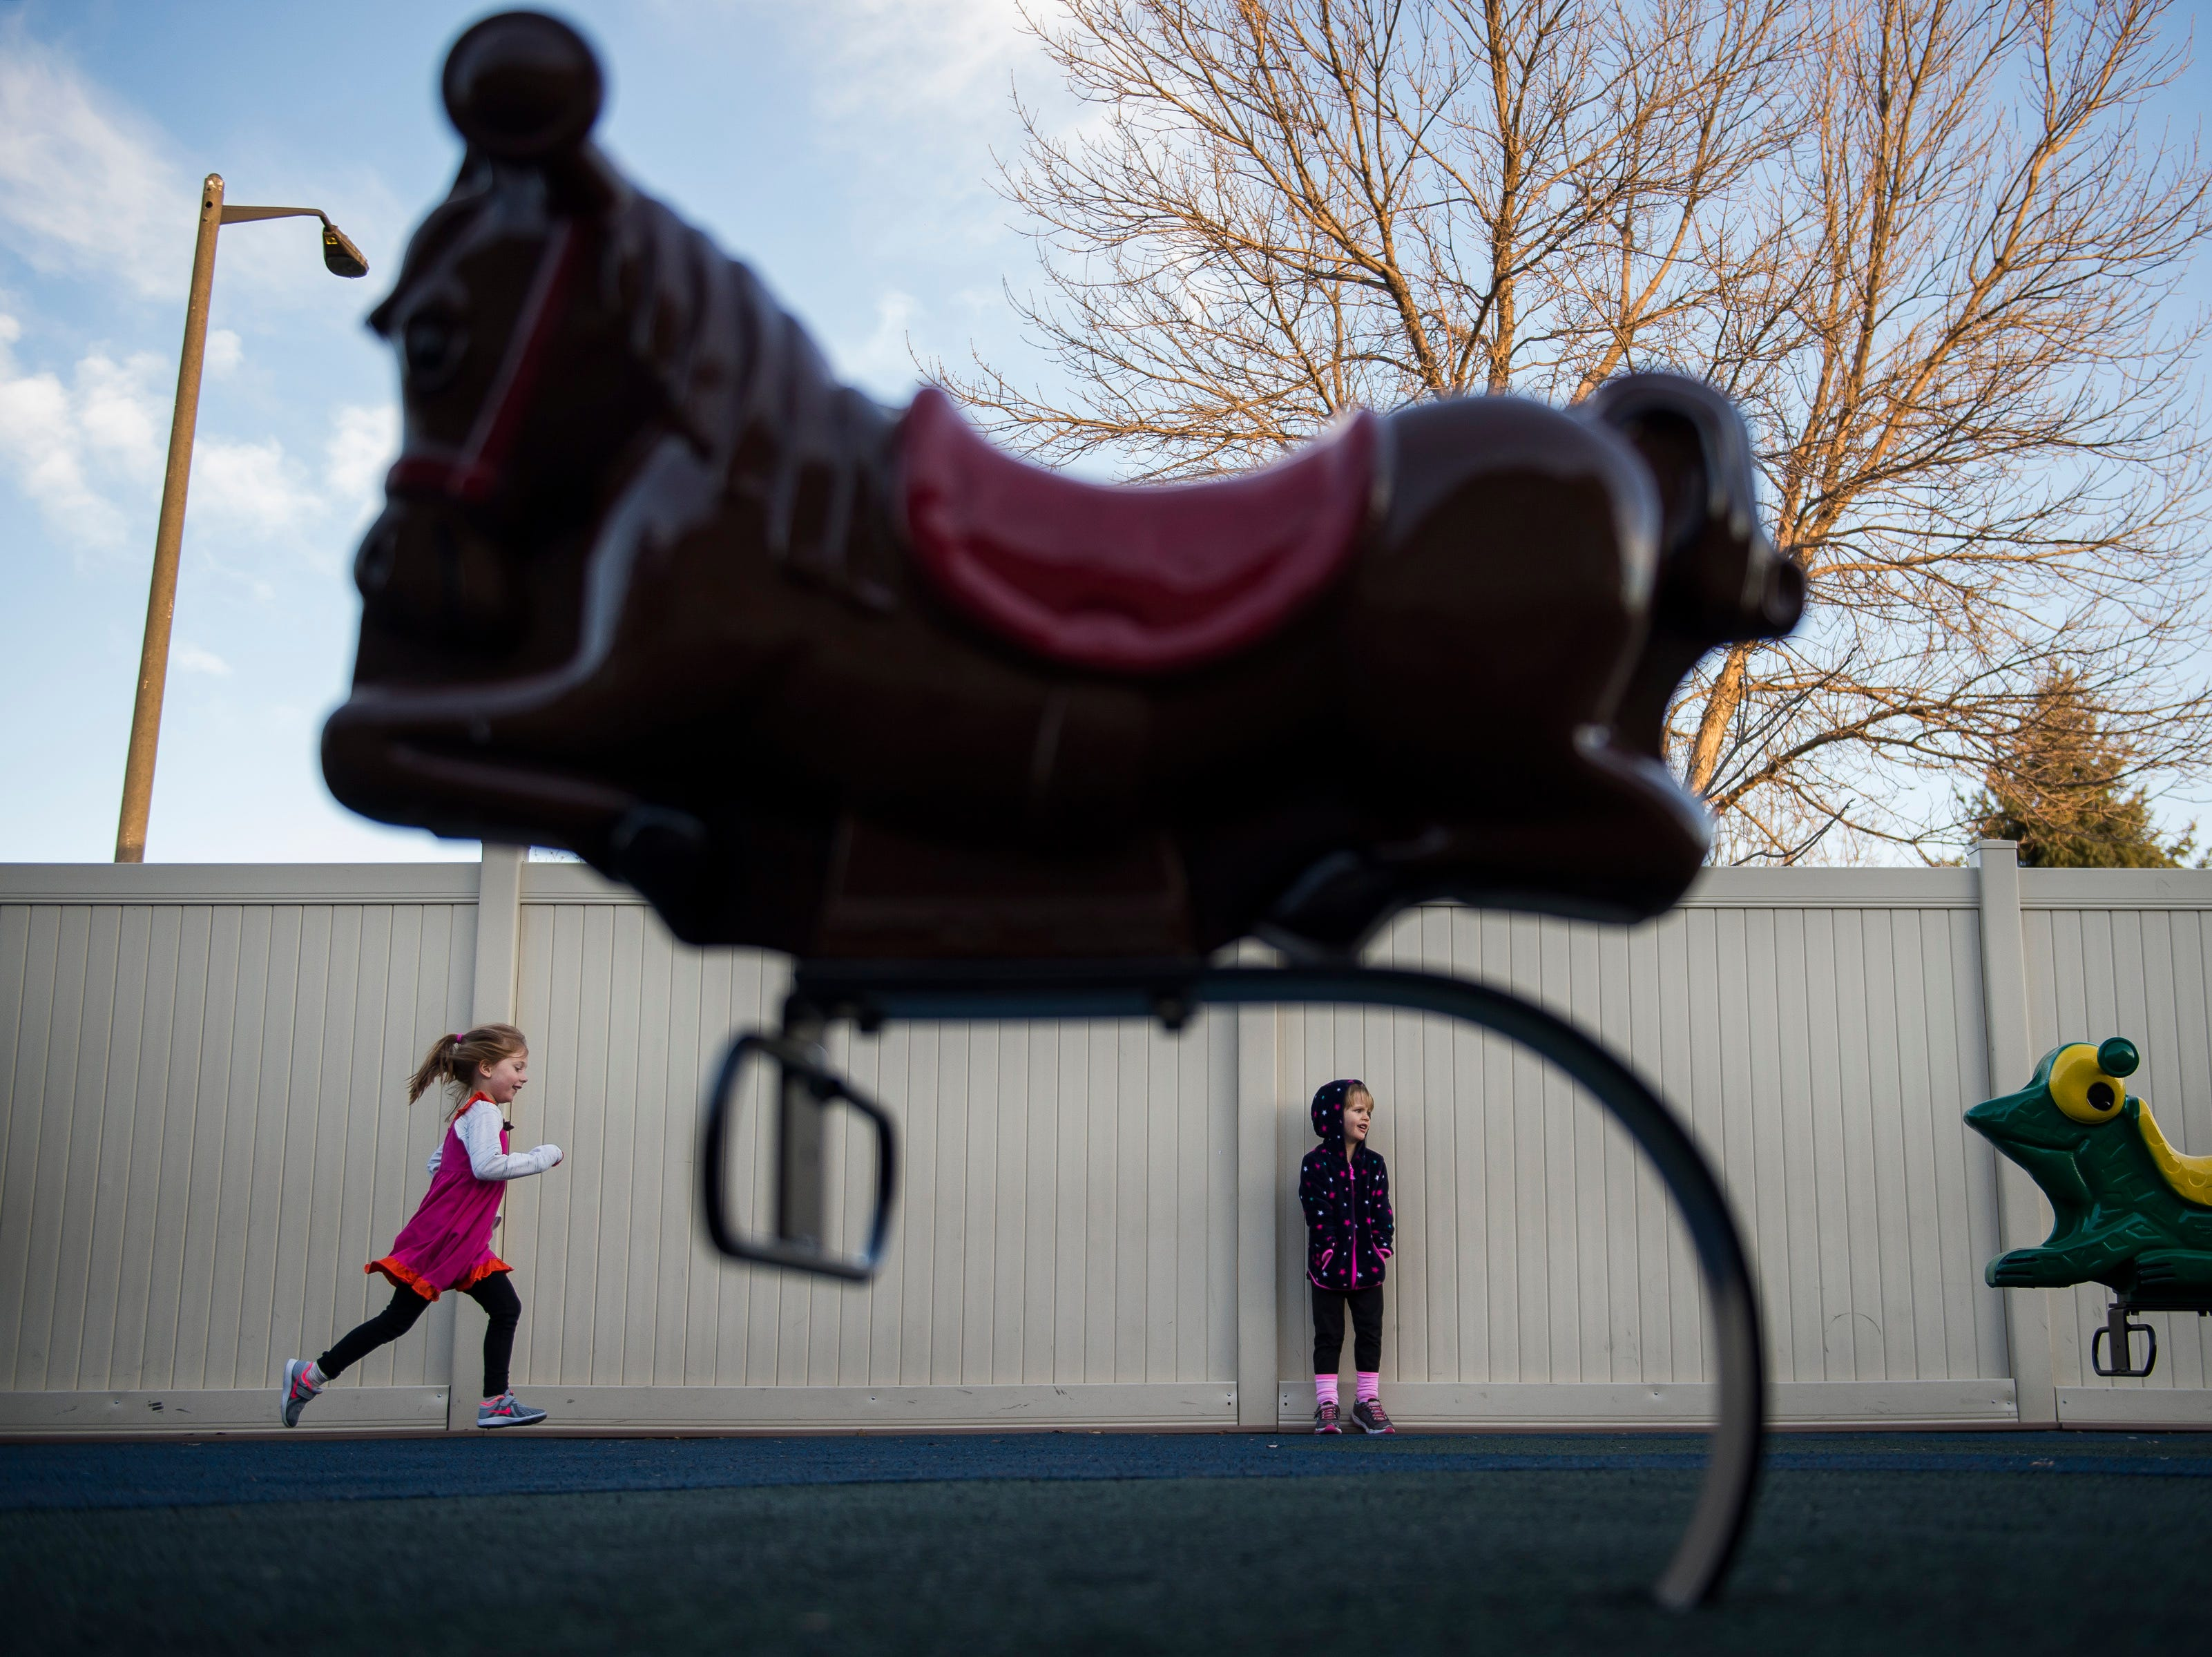 Scarlett Archer, 4, runs through the playground area while Roz Nitchie-Shonka looks on during a recess time on Thursday, Nov. 15, 2018, at The Learning Experience child development center in Fort Collins, Colo.